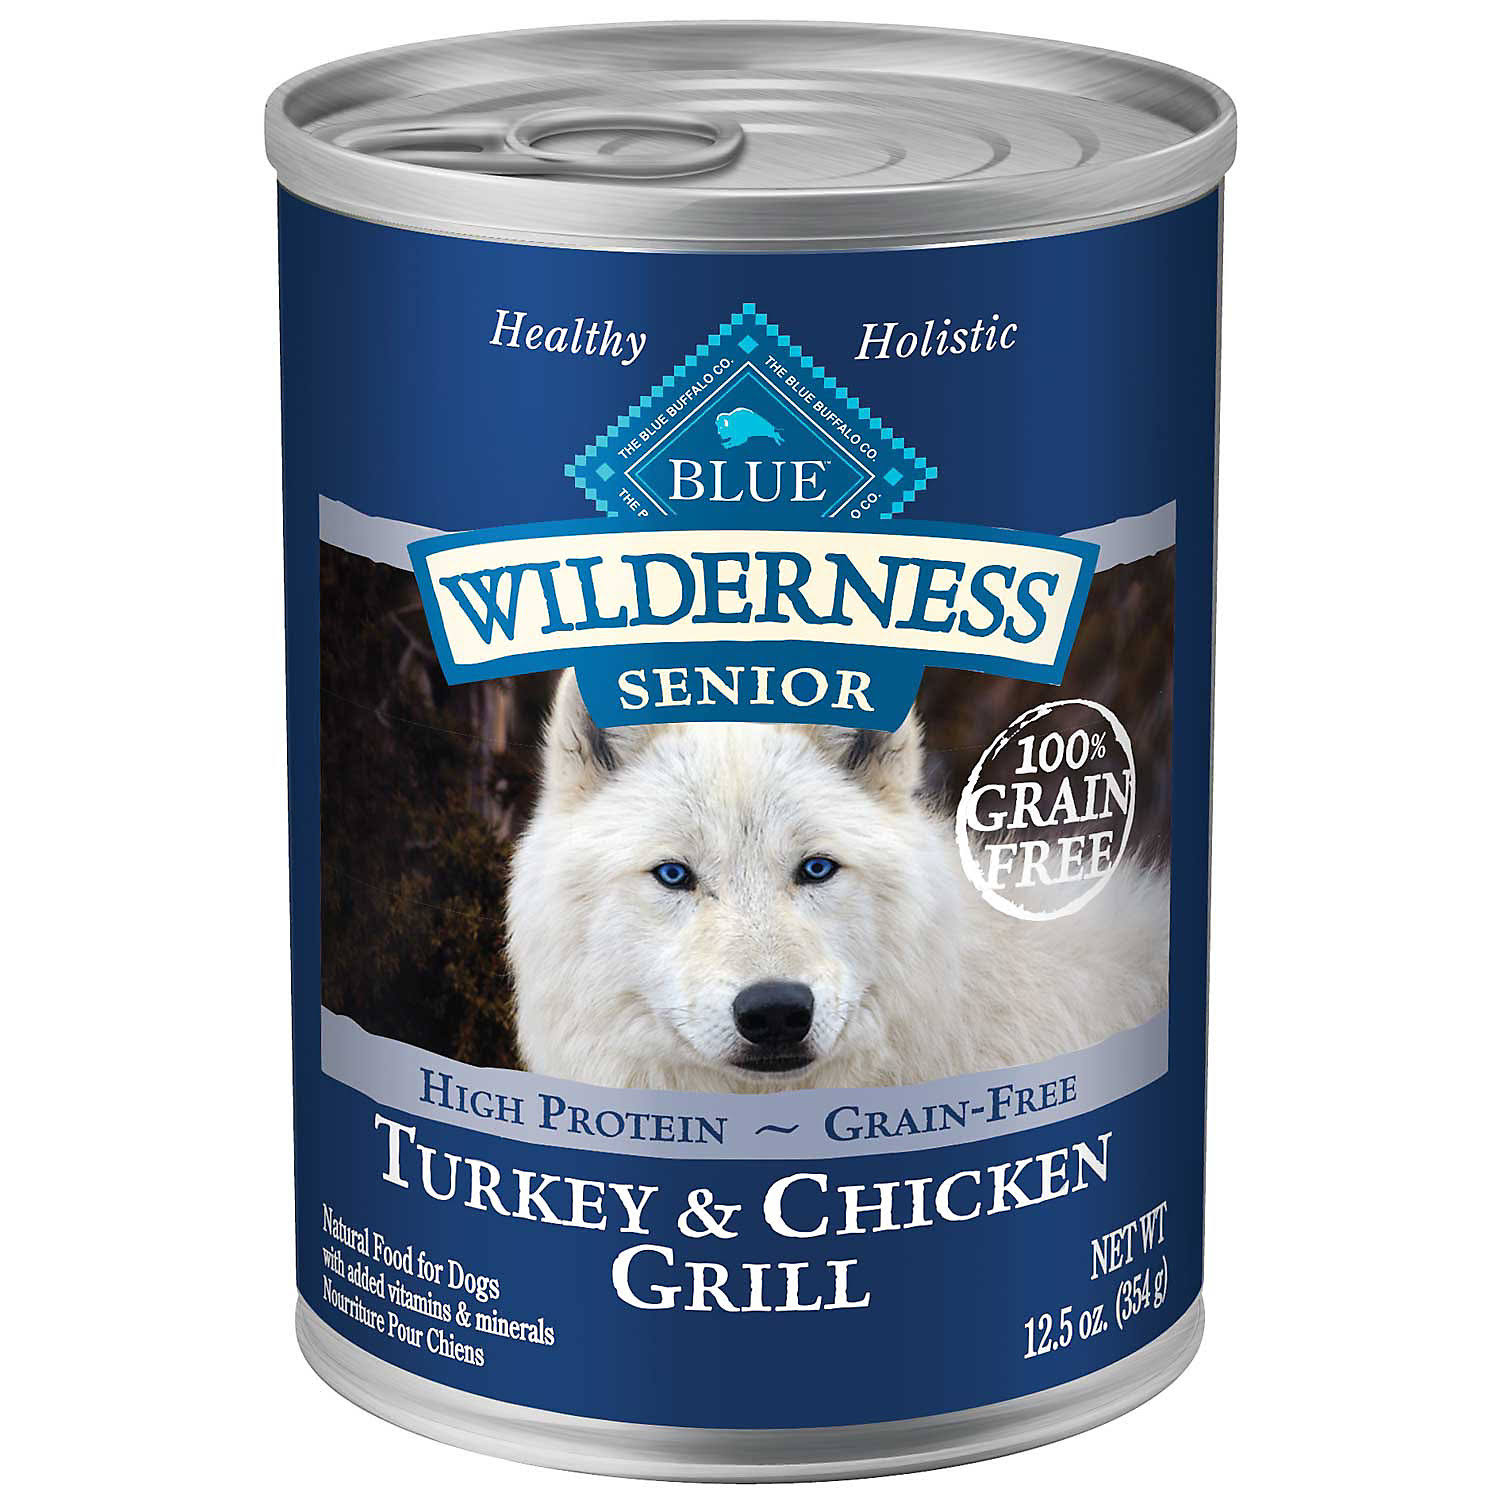 Blue Buffalo Wilderness Senior Dog Food - Turkey & Chicken Grill